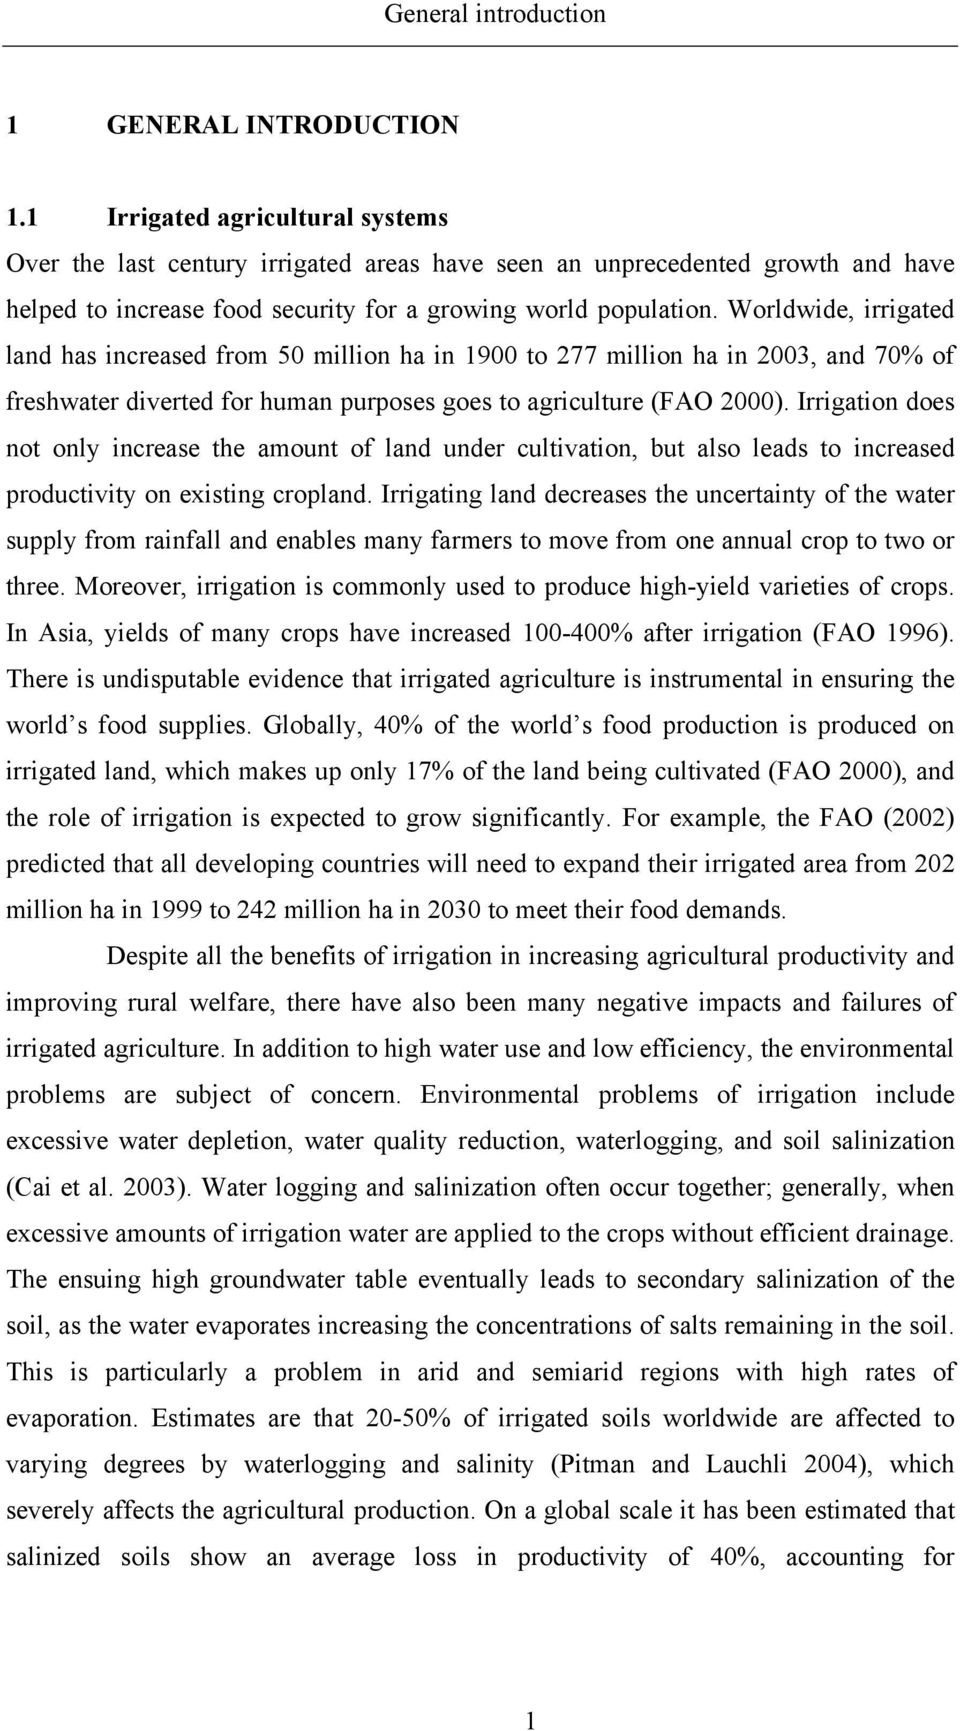 Worldwide, irrigated land has increased from 50 million ha in 1900 to 277 million ha in 2003, and 70% of freshwater diverted for human purposes goes to agriculture (FAO 2000).